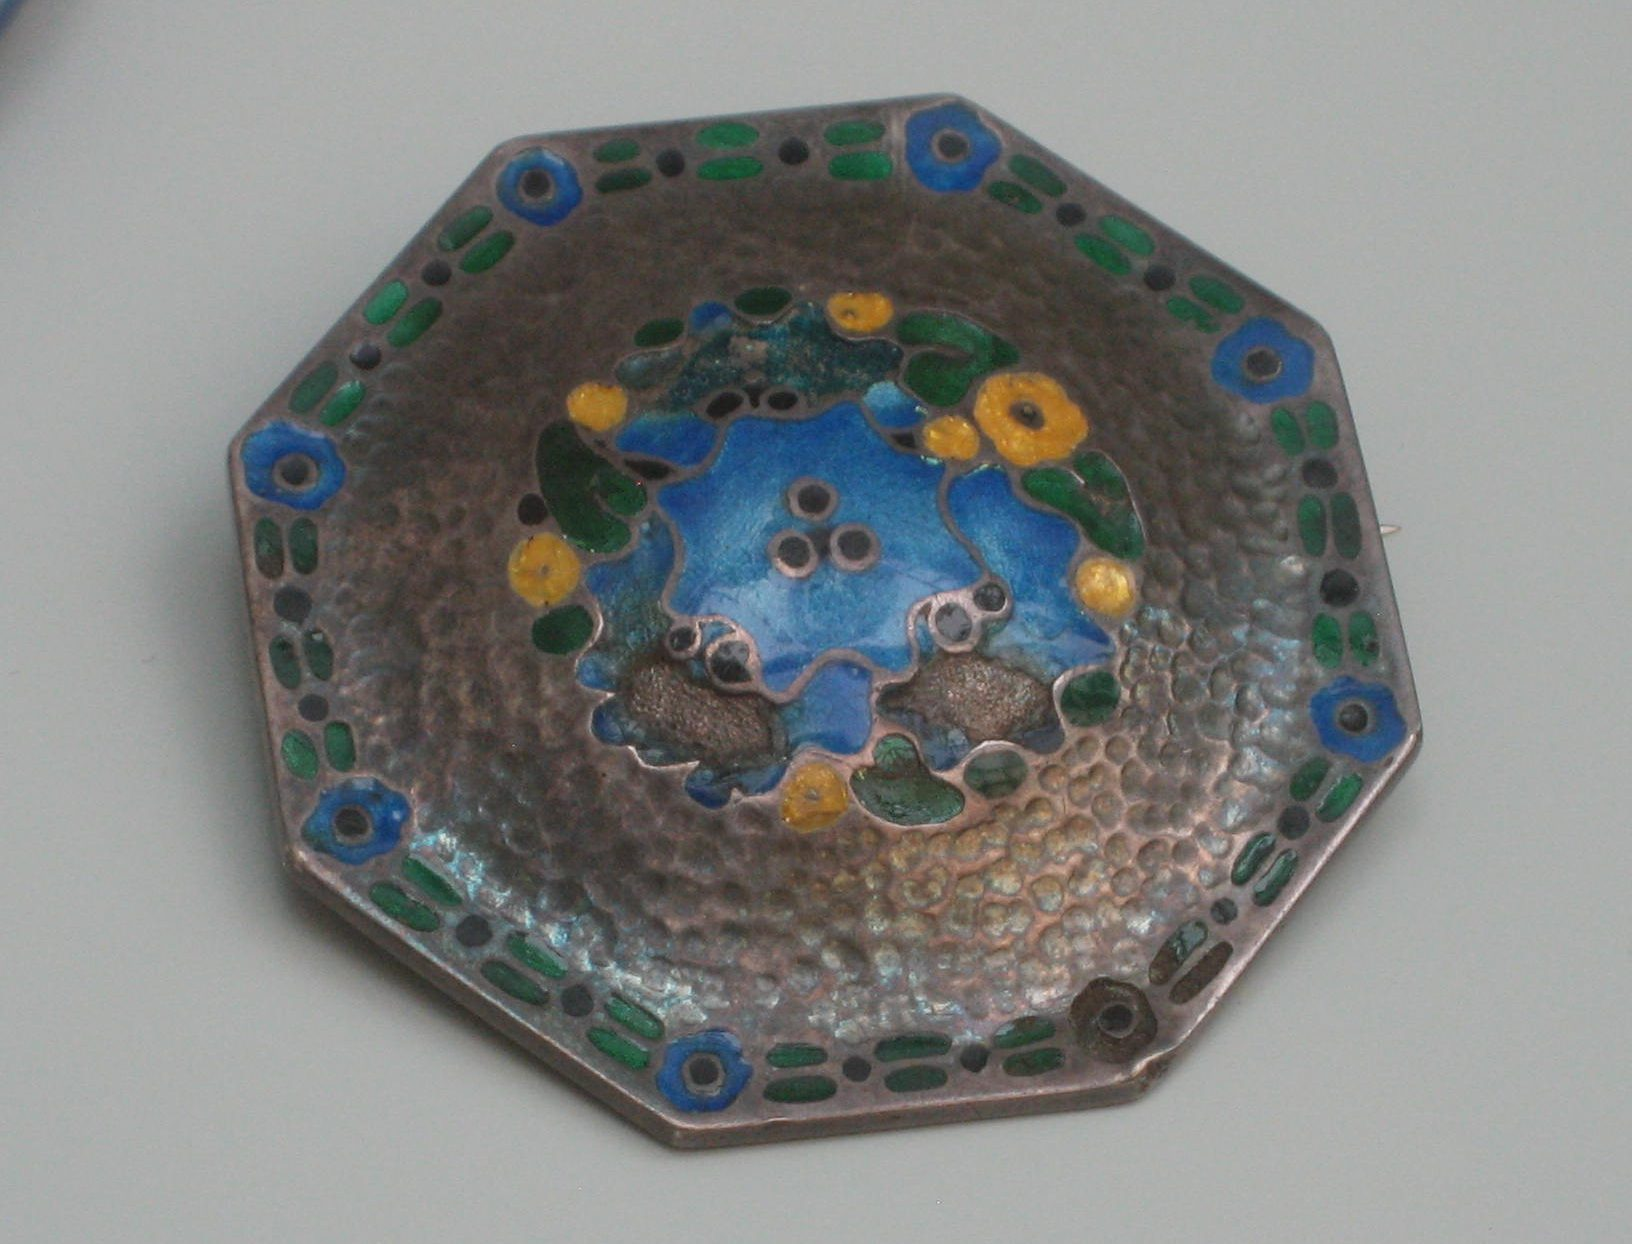 Theodor Fahrner, broche, 1908-1910. Collectie Grassimuseum. Foto Esther Doornbusch, mei 2018, CC BY 4.0